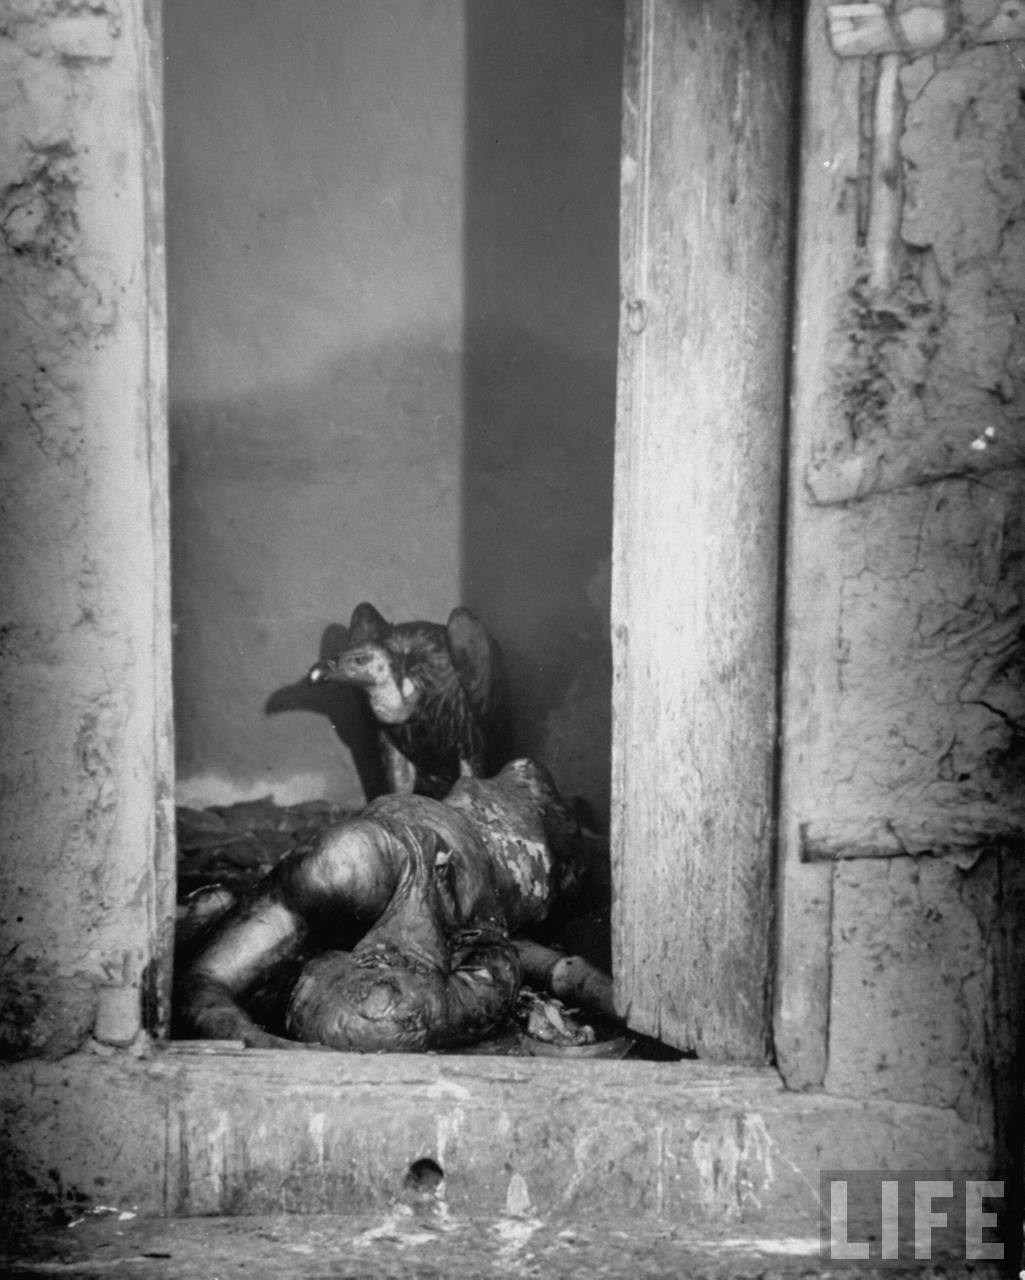 Vulture feeding on a corpse lying abandoned in a doorway after bloody rioting